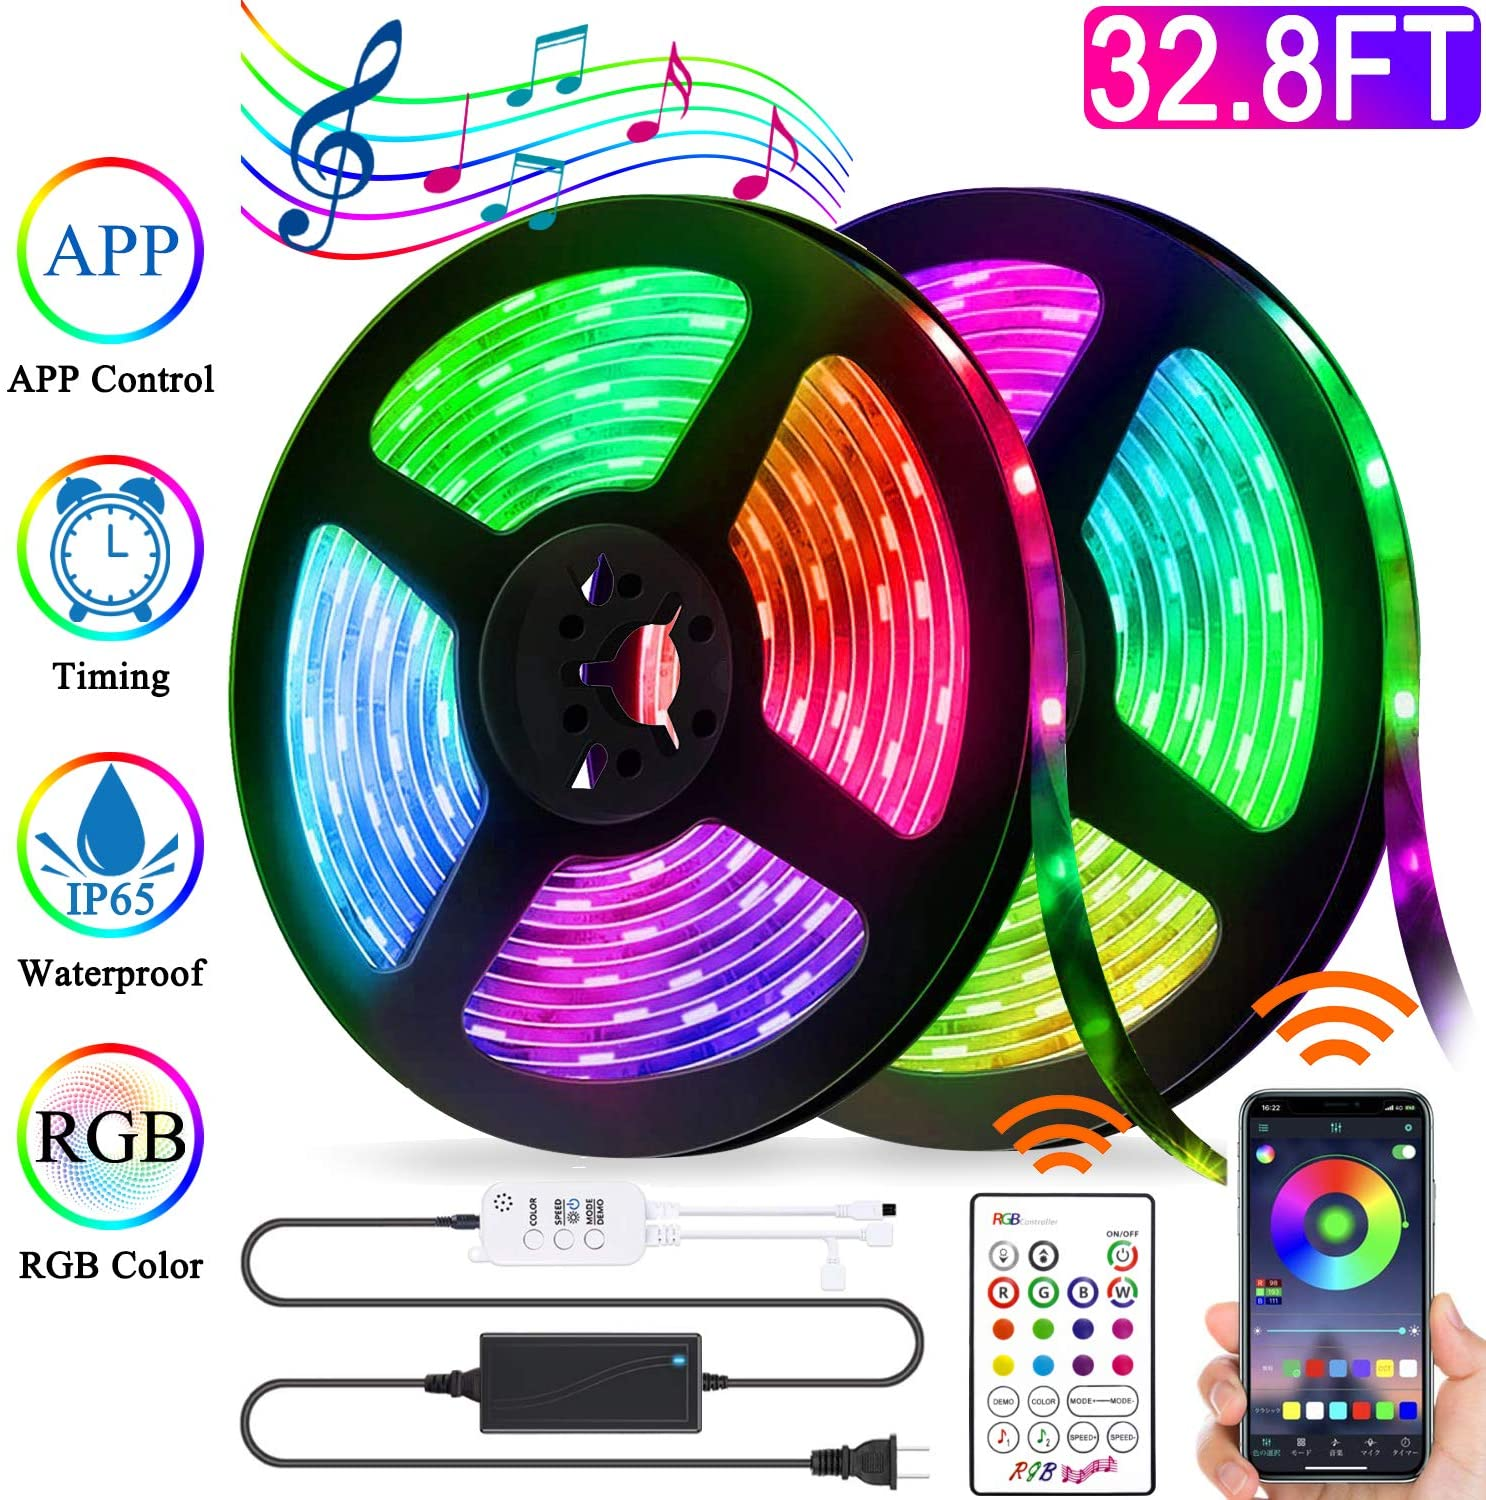 44 Key Smart RGB LED Strip 32.8ft Tape Light 300 LEDs WiFi APP Control Music  Waterproof for Room, Home, Kitchen